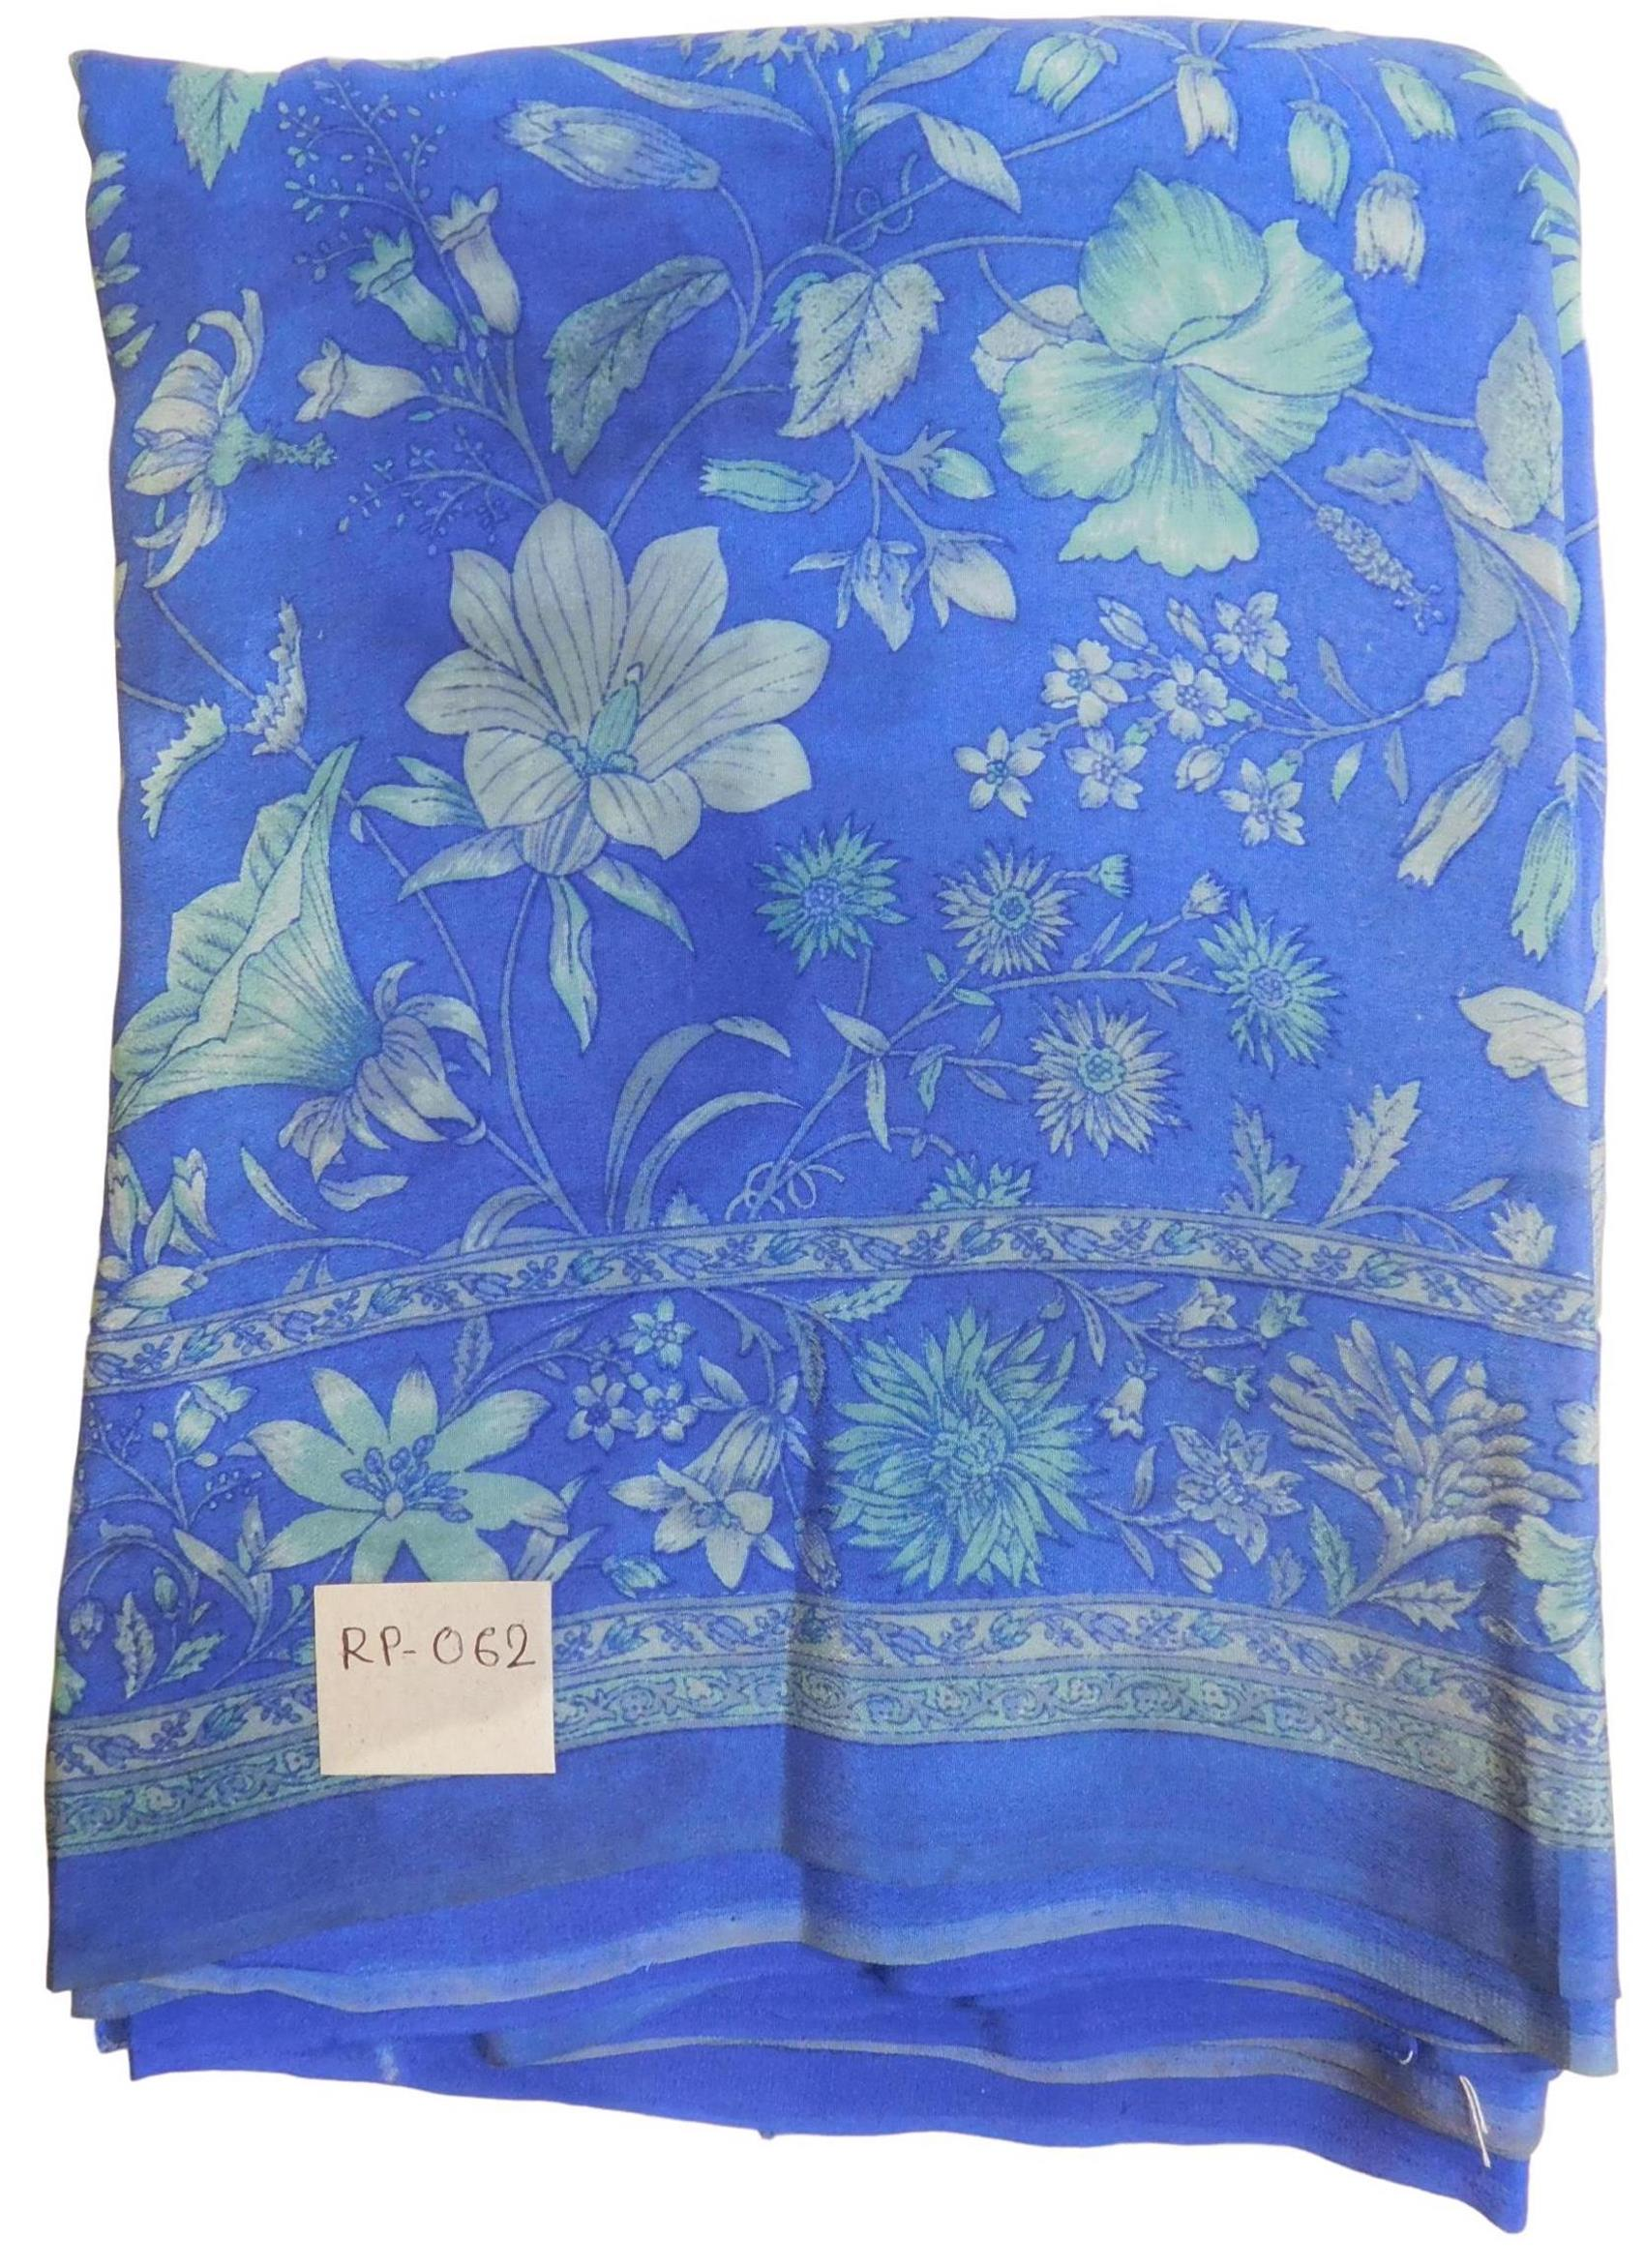 Multicolor Designer Wedding Partywear Pure Crepe Hand Brush Reprinted Kolkata Saree Sari RP62